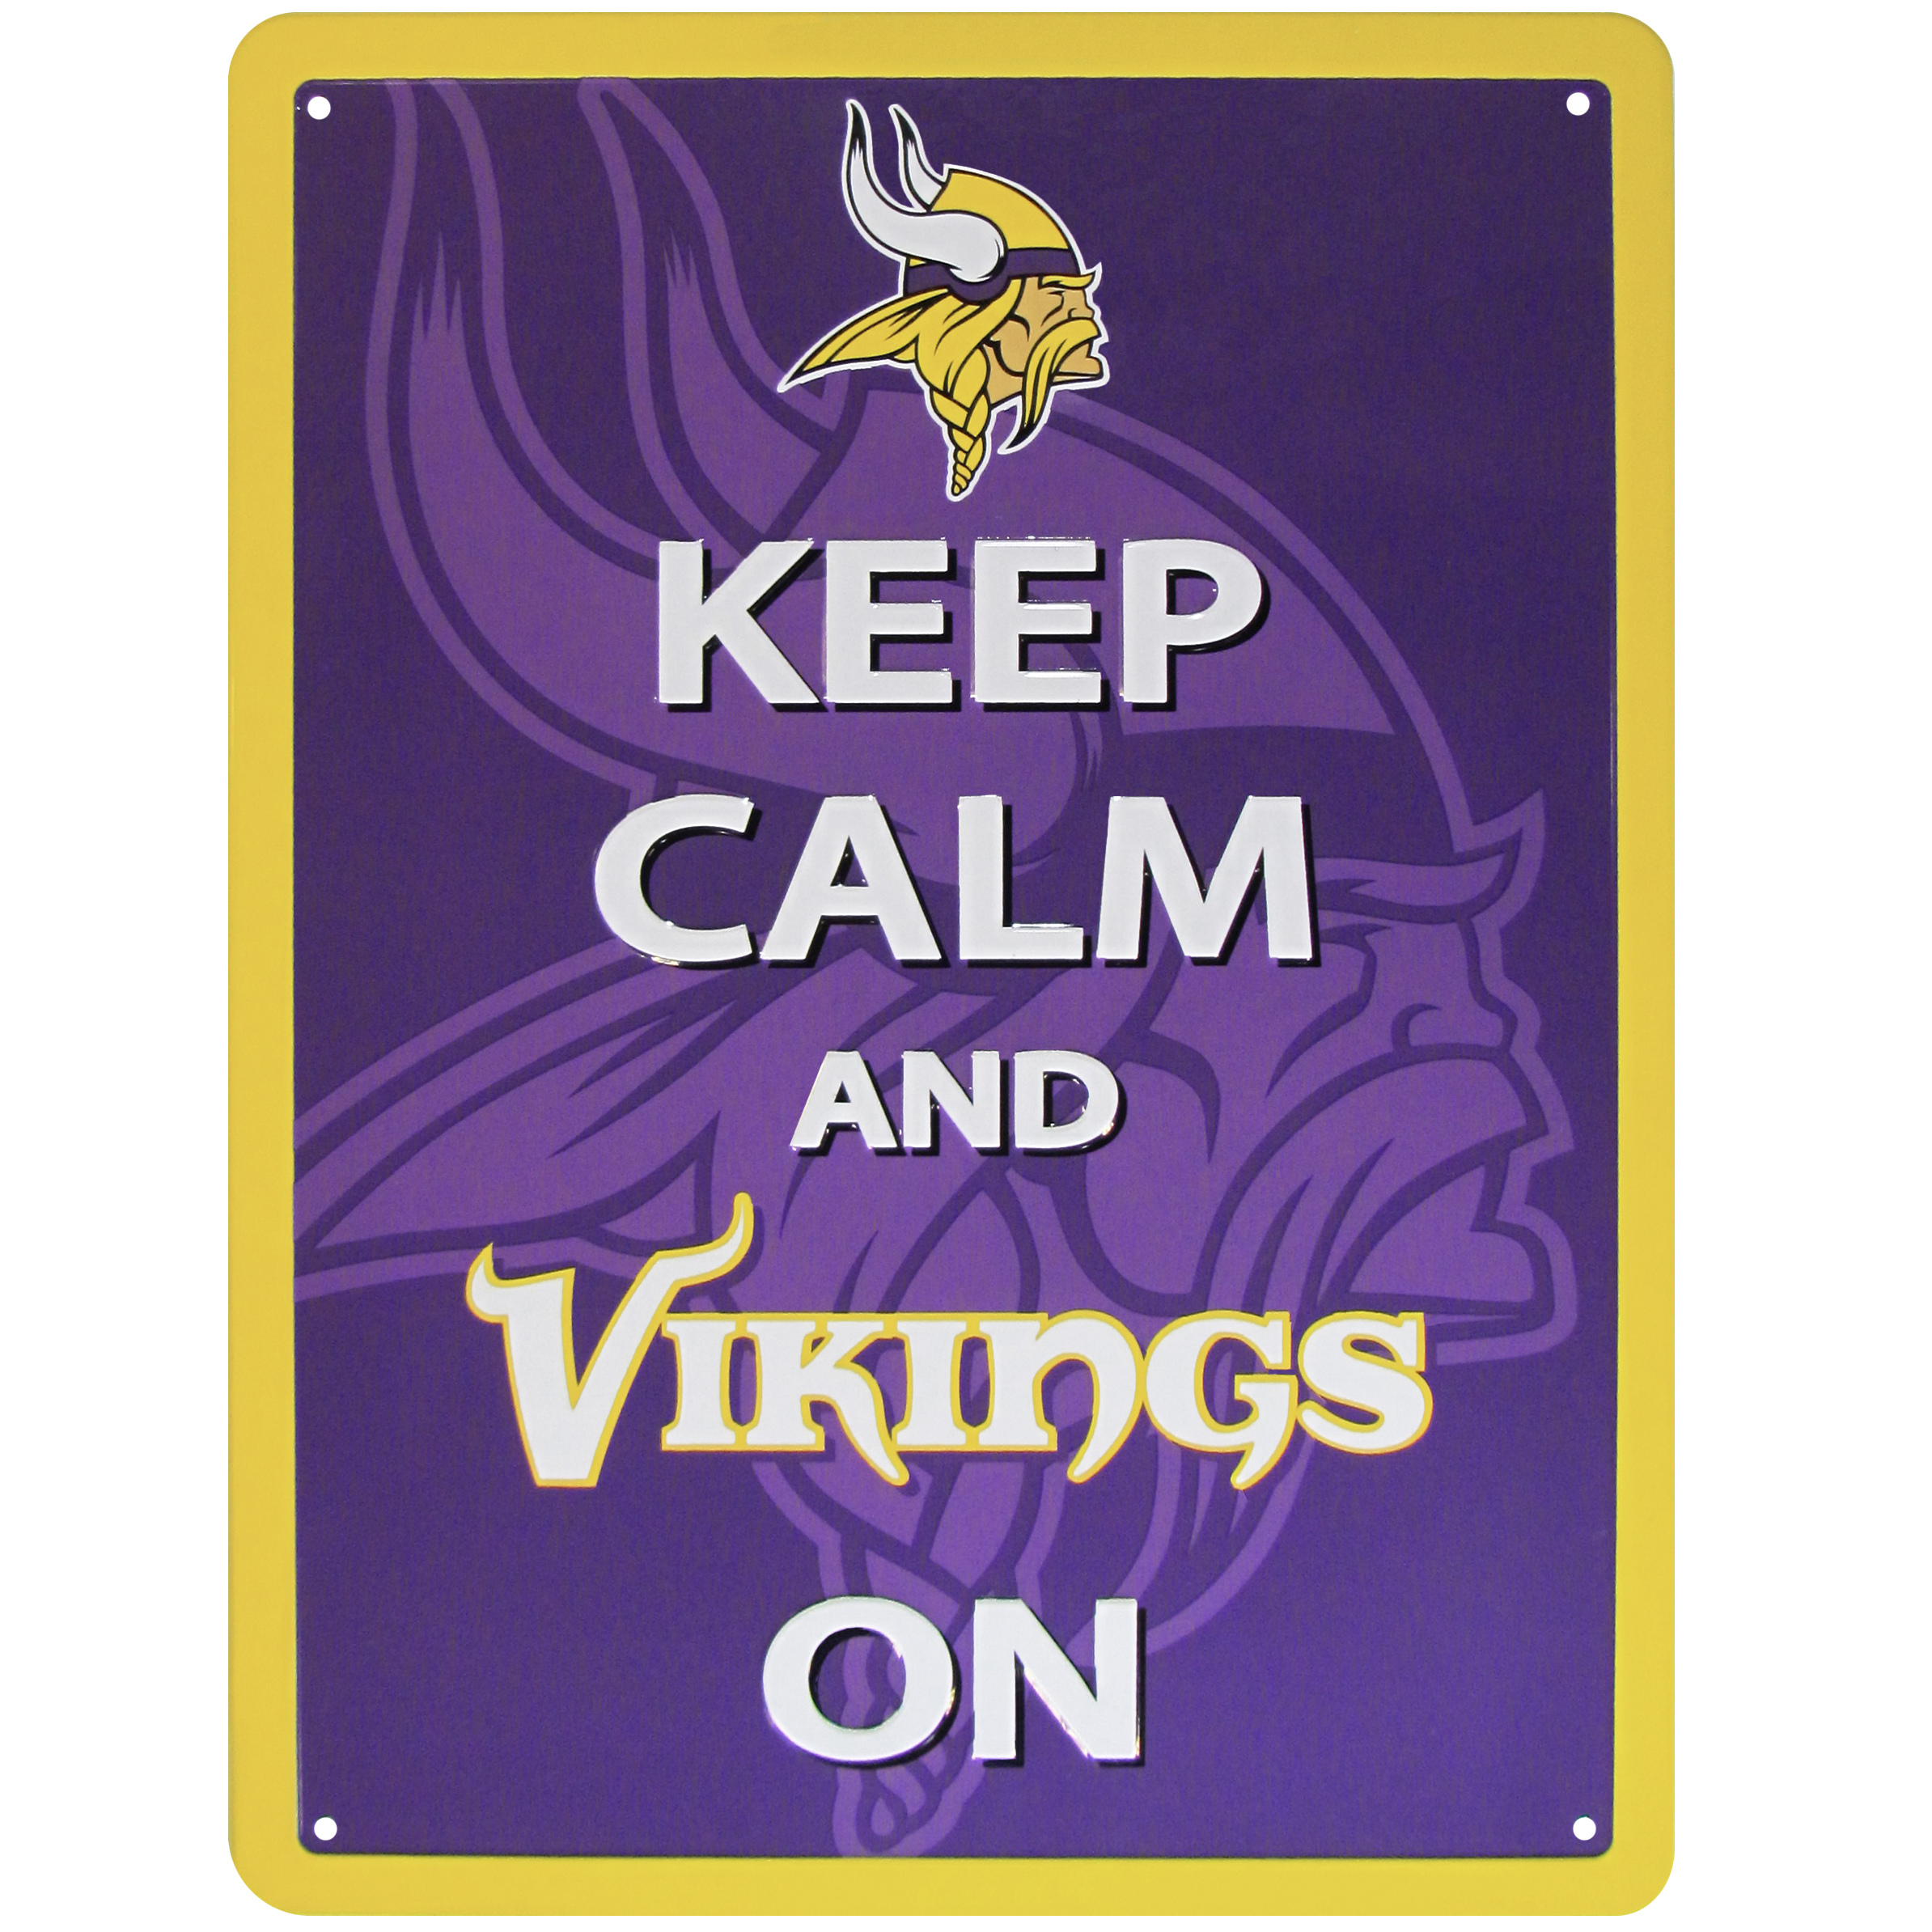 Minnesota Vikings Keep Calm Sign - One of the most enduring motivational signs of all time is now available with your beloved Minnesota Vikings logo. The 9 inch by 12 inch sign is a must have for any fan cave!